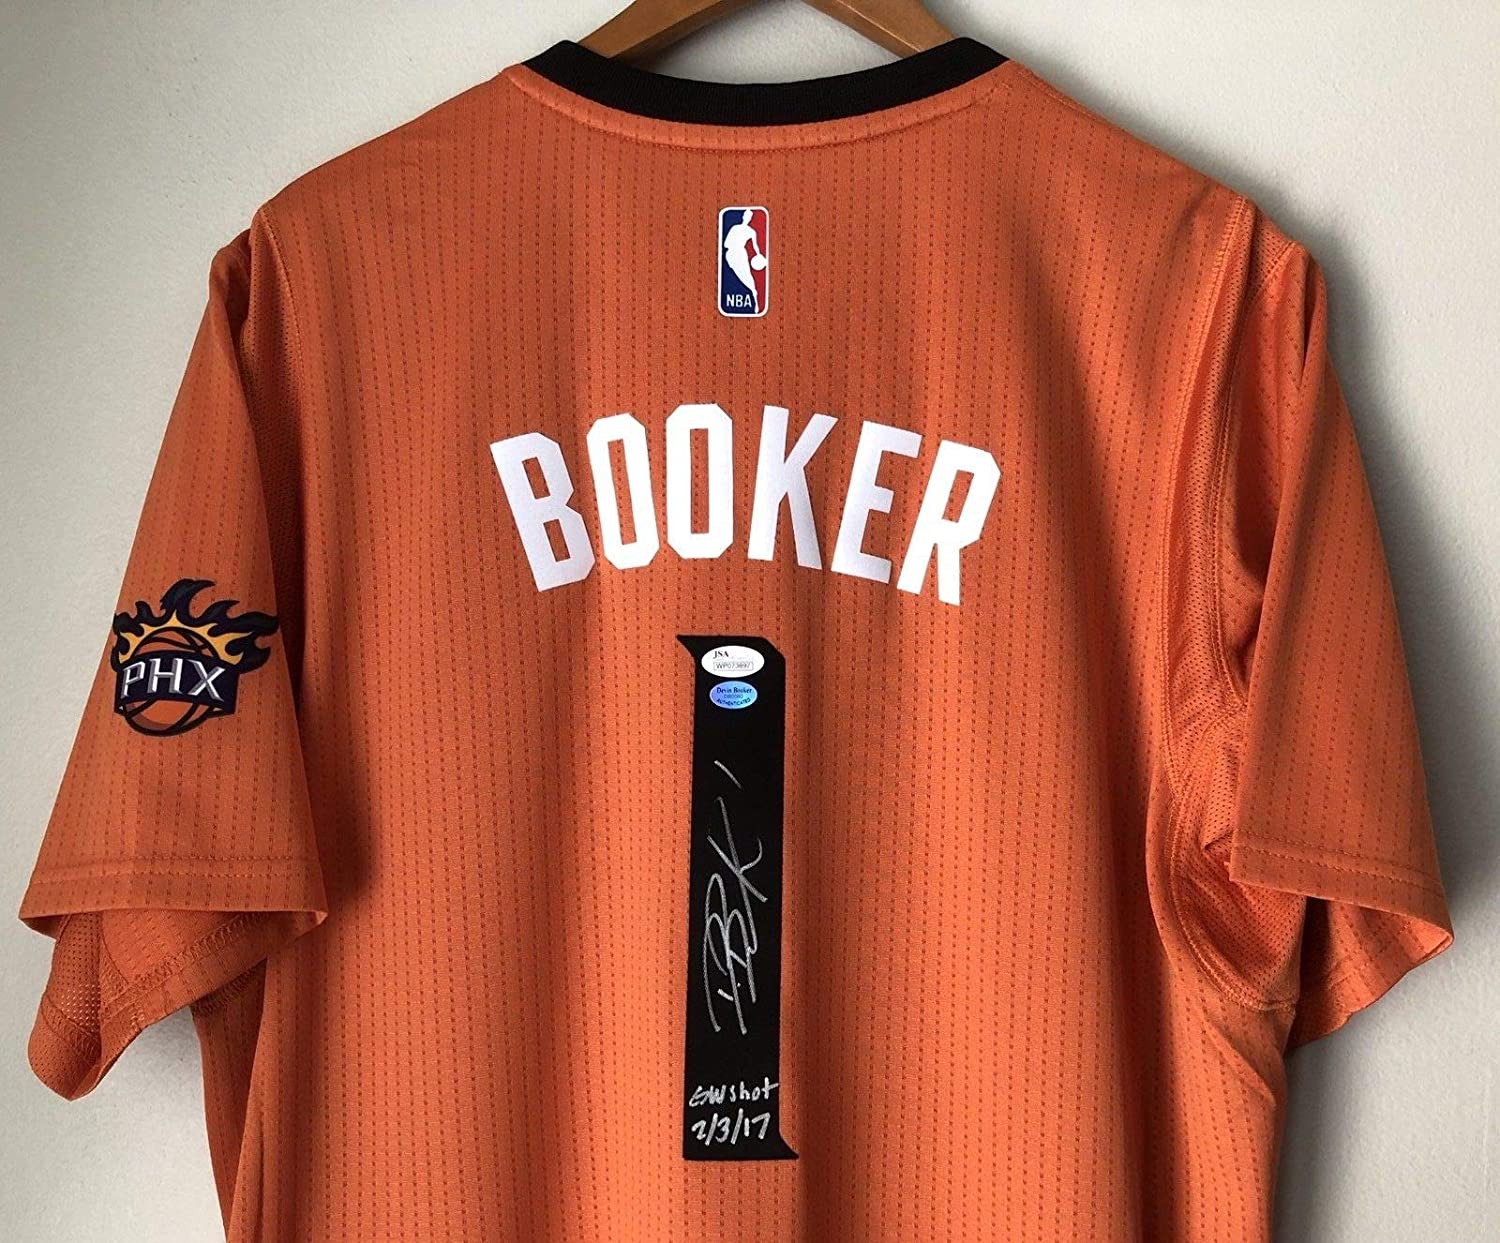 8ba1fcf2900 Devin Booker Autographed Signed Phoenix Suns Autographed Signed Swingman  Jersey (Size XL) JSA   Booker Coa at Amazon s Sports Collectibles Store